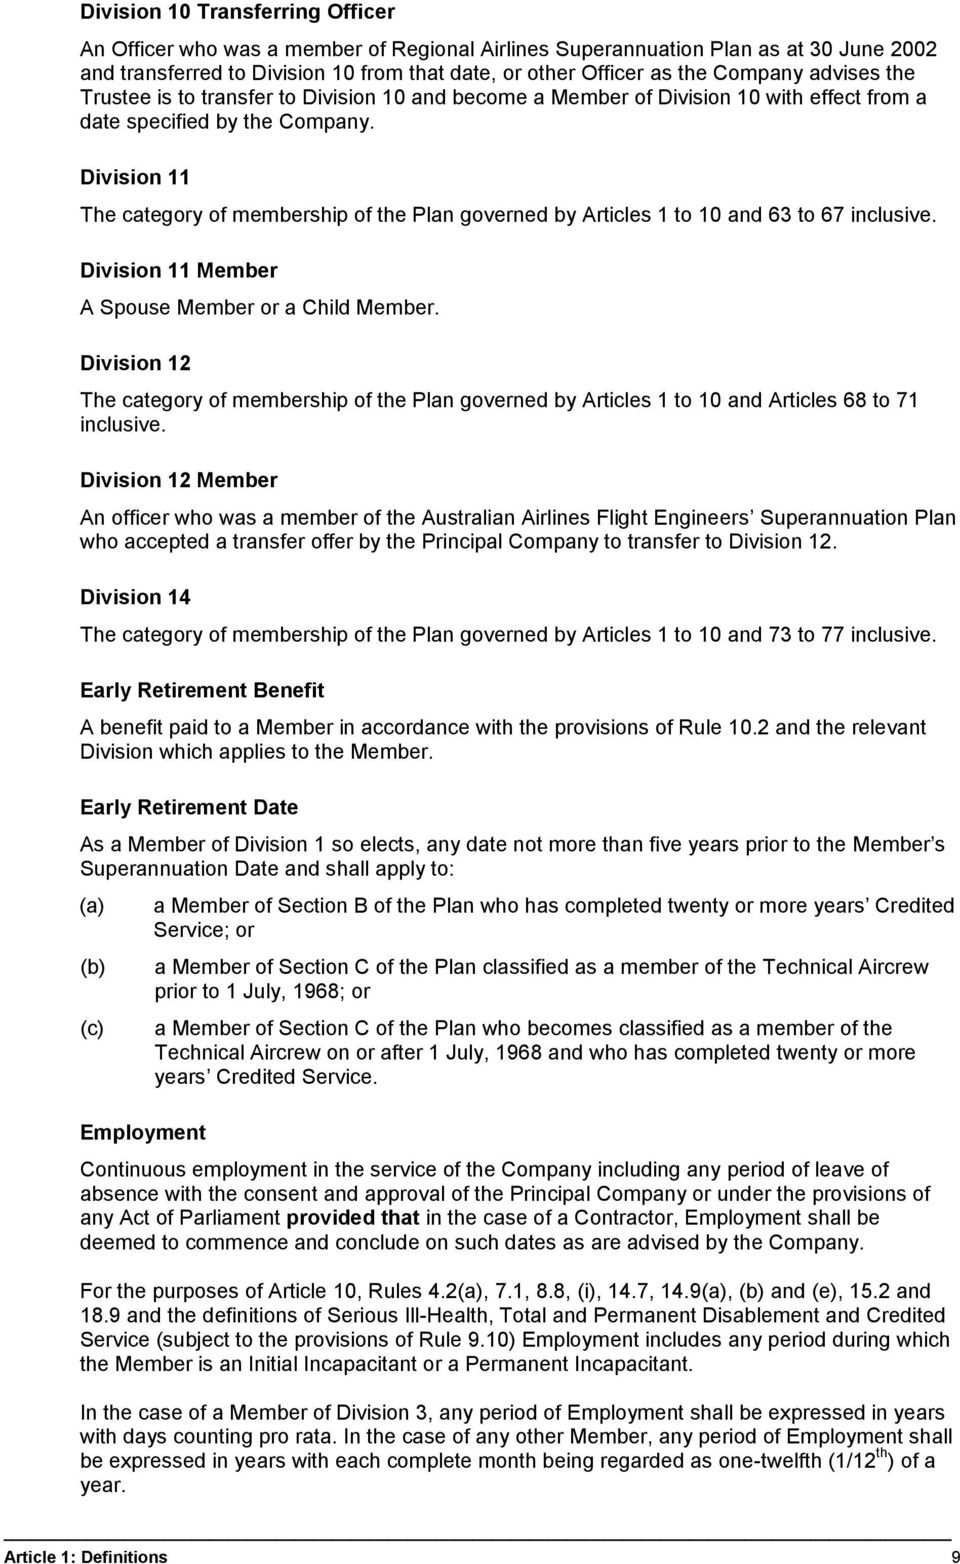 Division 11 The category of membership of the Plan governed by Articles 1 to 10 and 63 to 67 inclusive. Division 11 Member A Spouse Member or a Child Member.